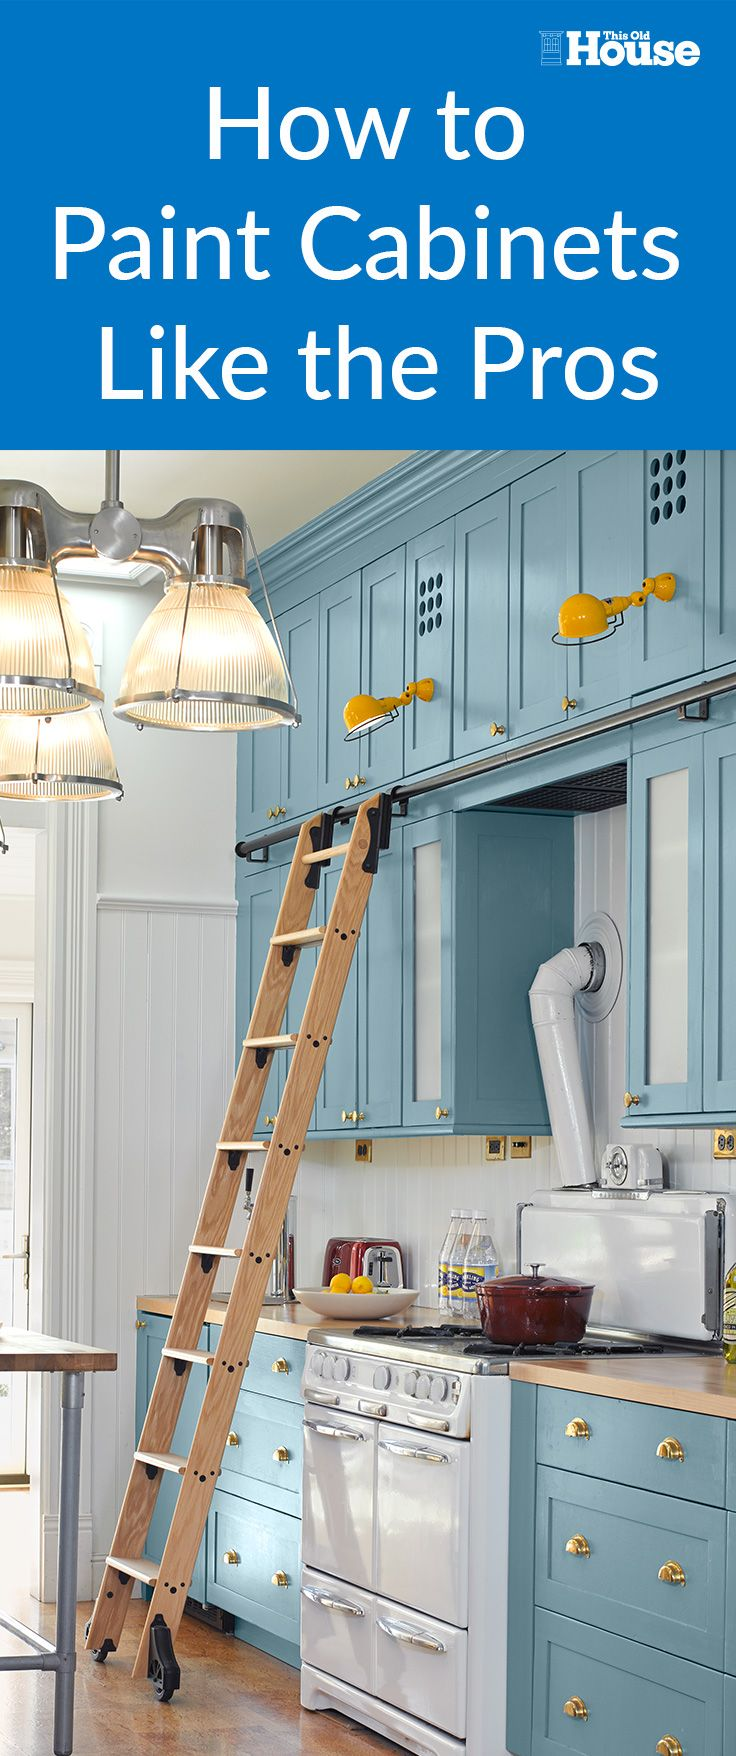 Pro Secrets For Painting Kitchen Cabinets Pinterest Bank Account - Who to hire to paint kitchen cabinets